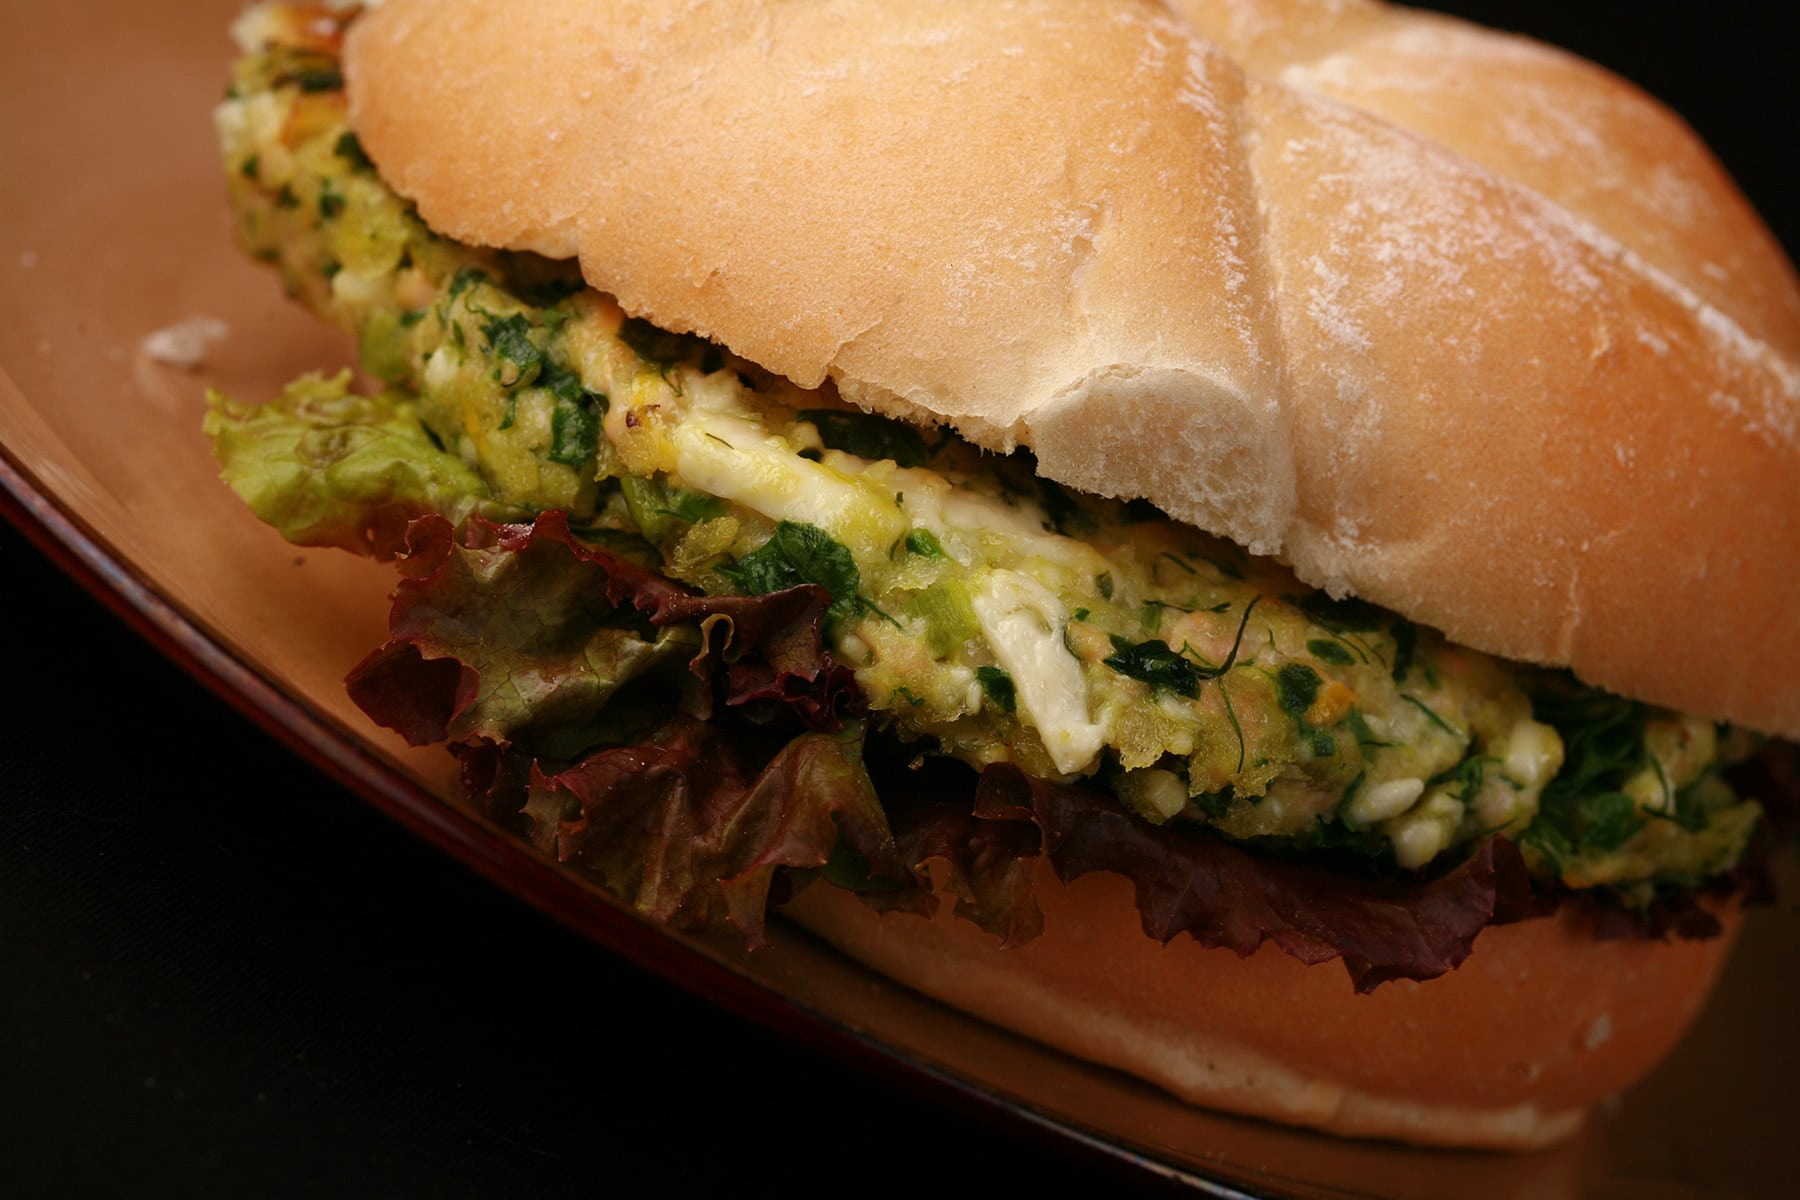 A salmon burger with spinach and feta visible in the patty. It's on a kaiser bun, with red lettuce under the patty.